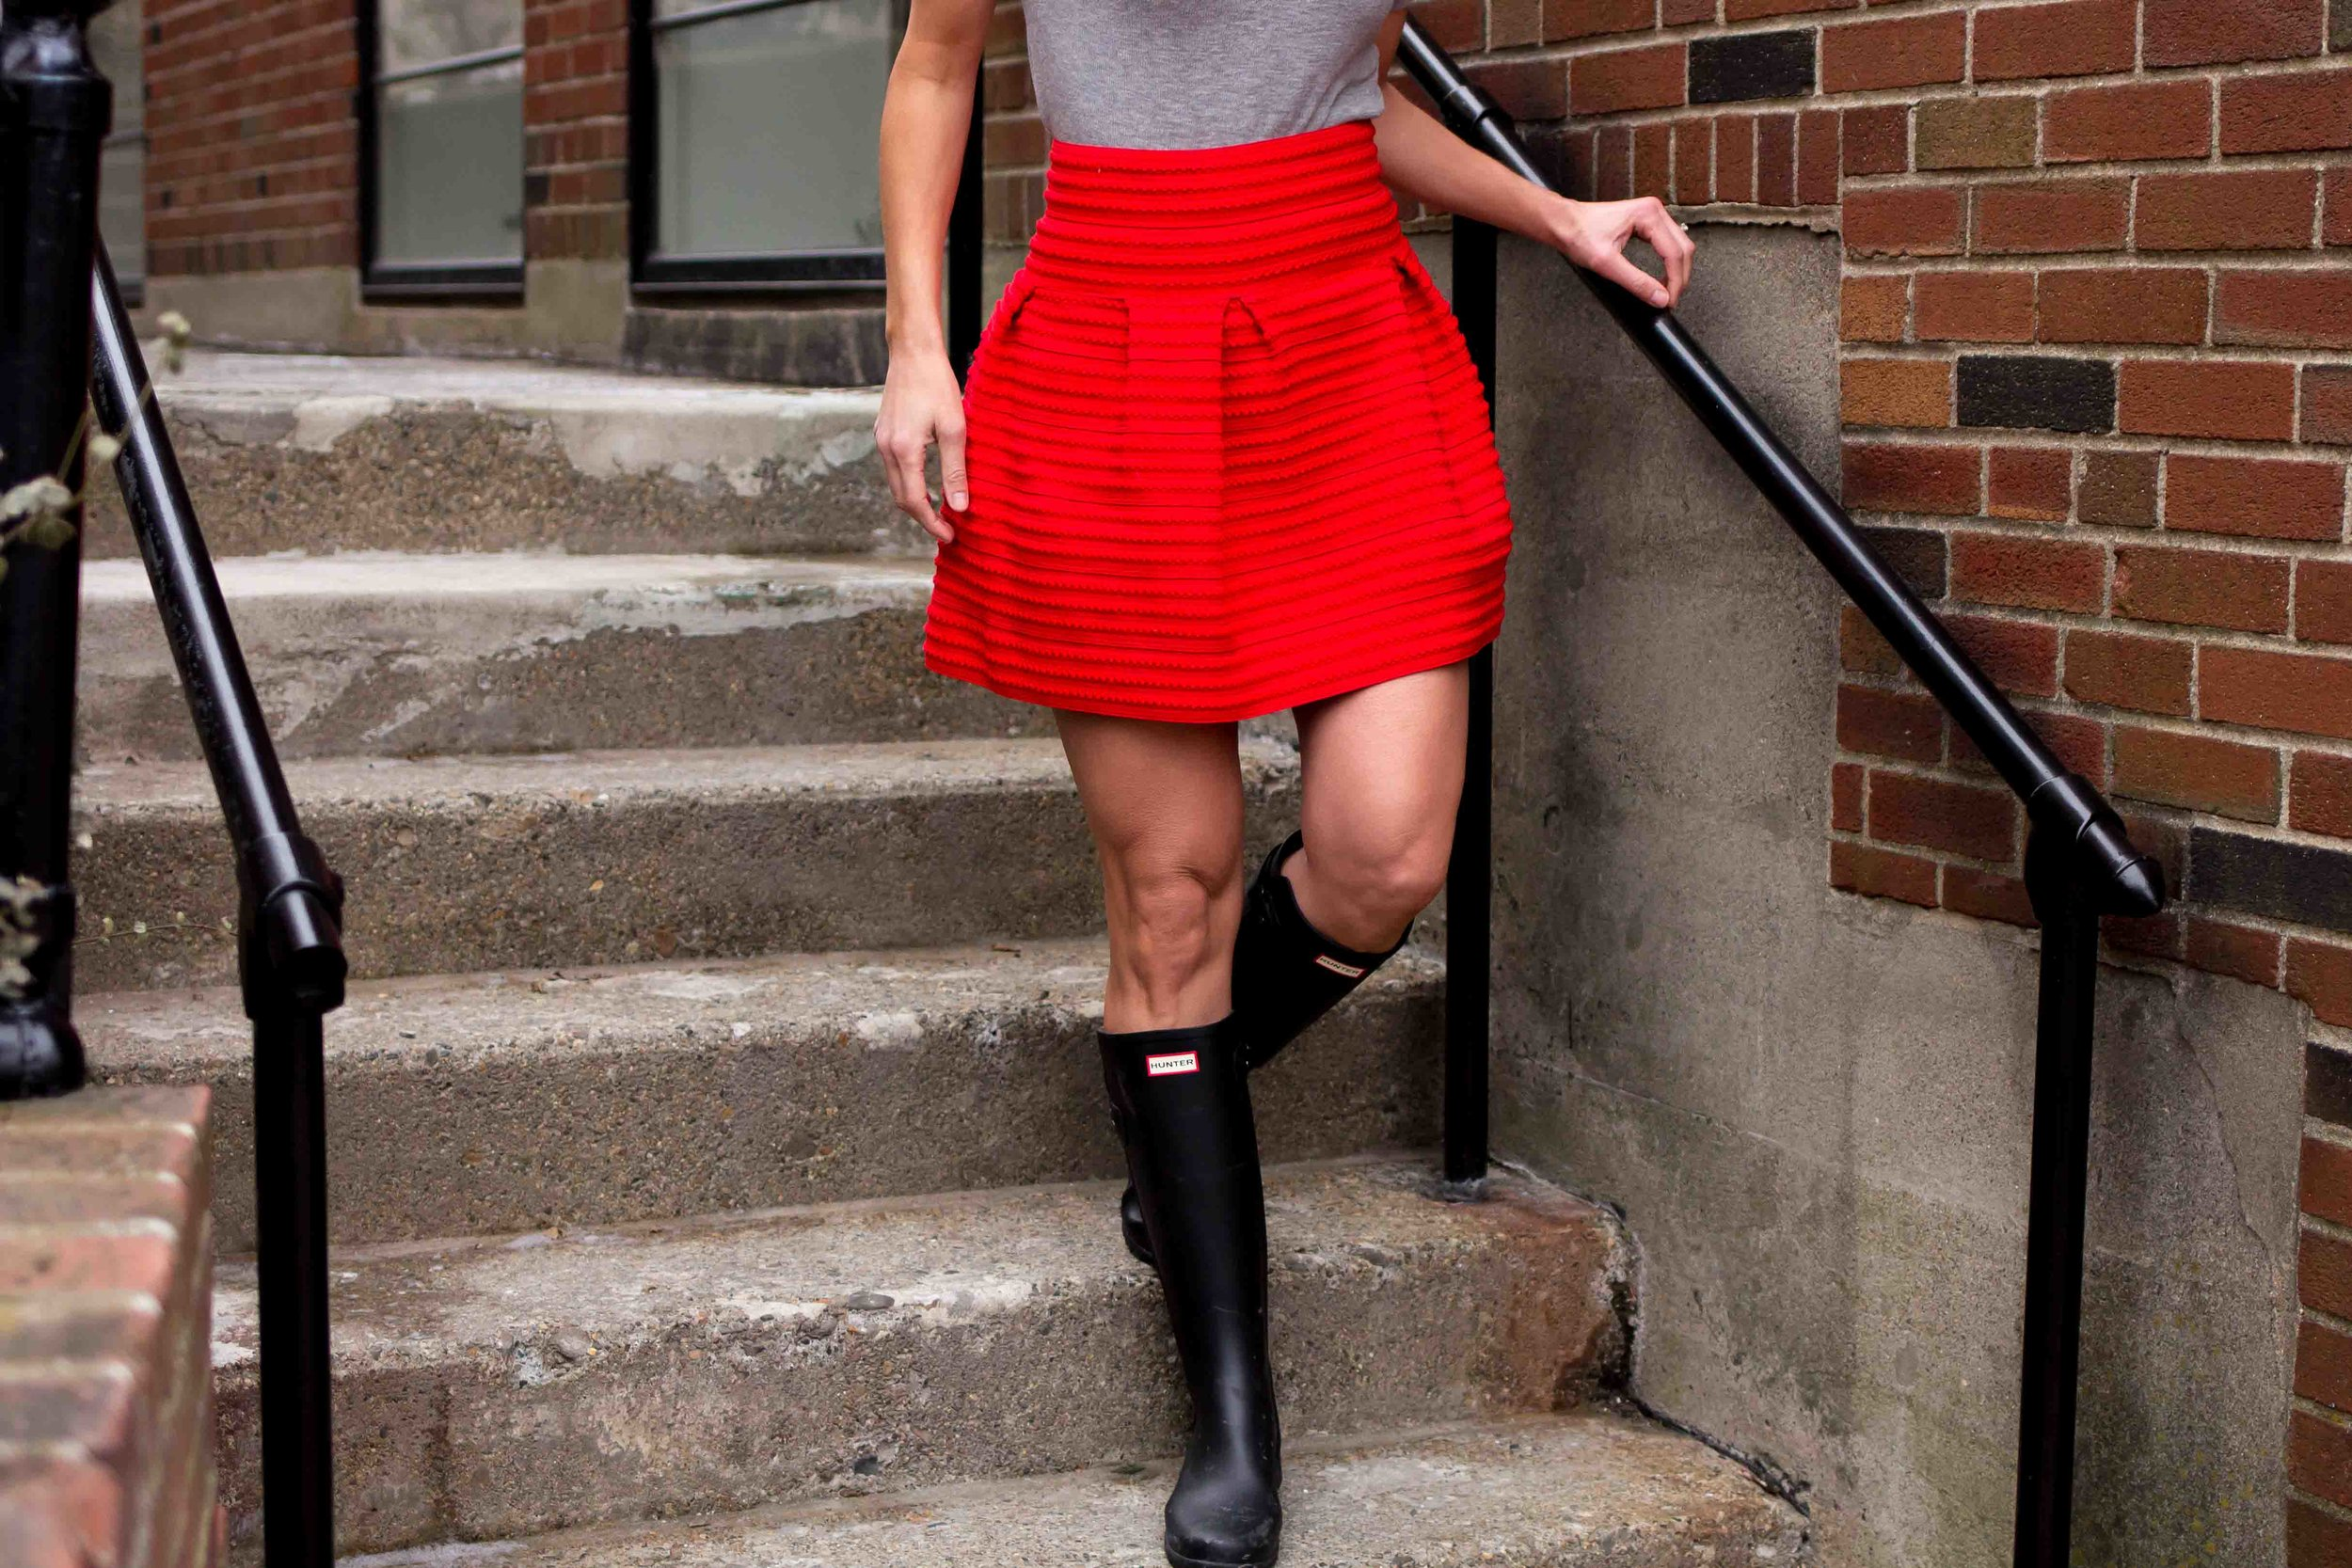 Valentines Day Outfits - Date Night Outfits - Fashion for Women - Hunter Boots Outfit - Red skirt Outfit - Style Outfits - Fashion Ideas  heartandseam.com  #heartandseam